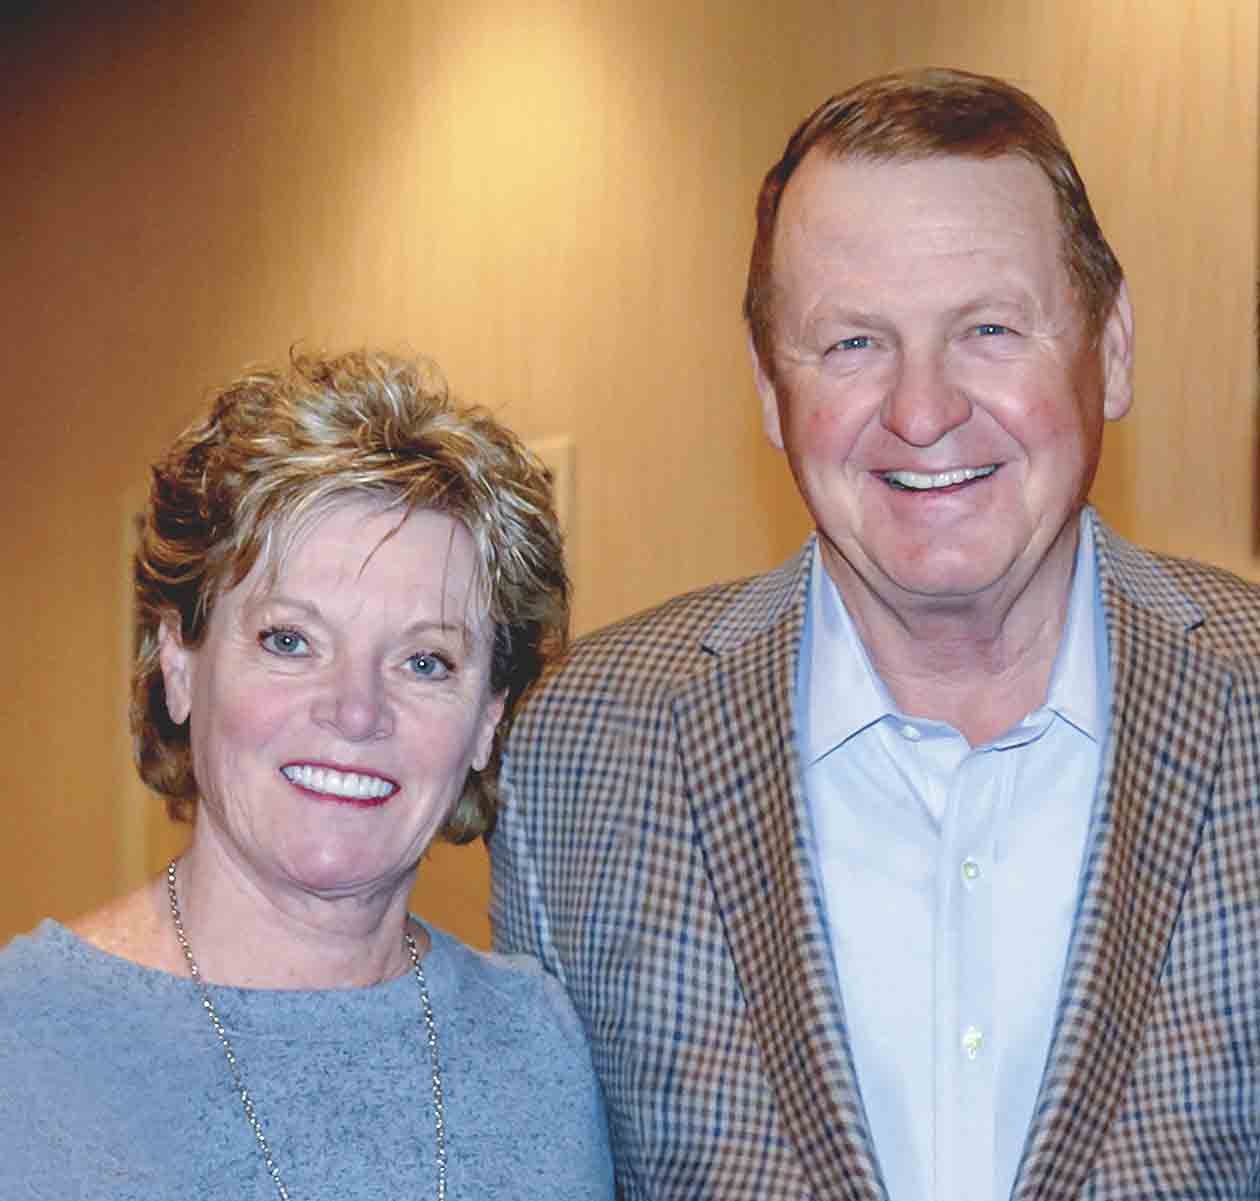 UIU alumni Steve ('73) and Diane ('73) Kinkead Harms of West Des Moines have donated $750,000 to the Upper Iowa University and City of Fayette $1.15 million Recreation Center Project. In addition to the communitywide impact, the project will provide significant benefits to both...